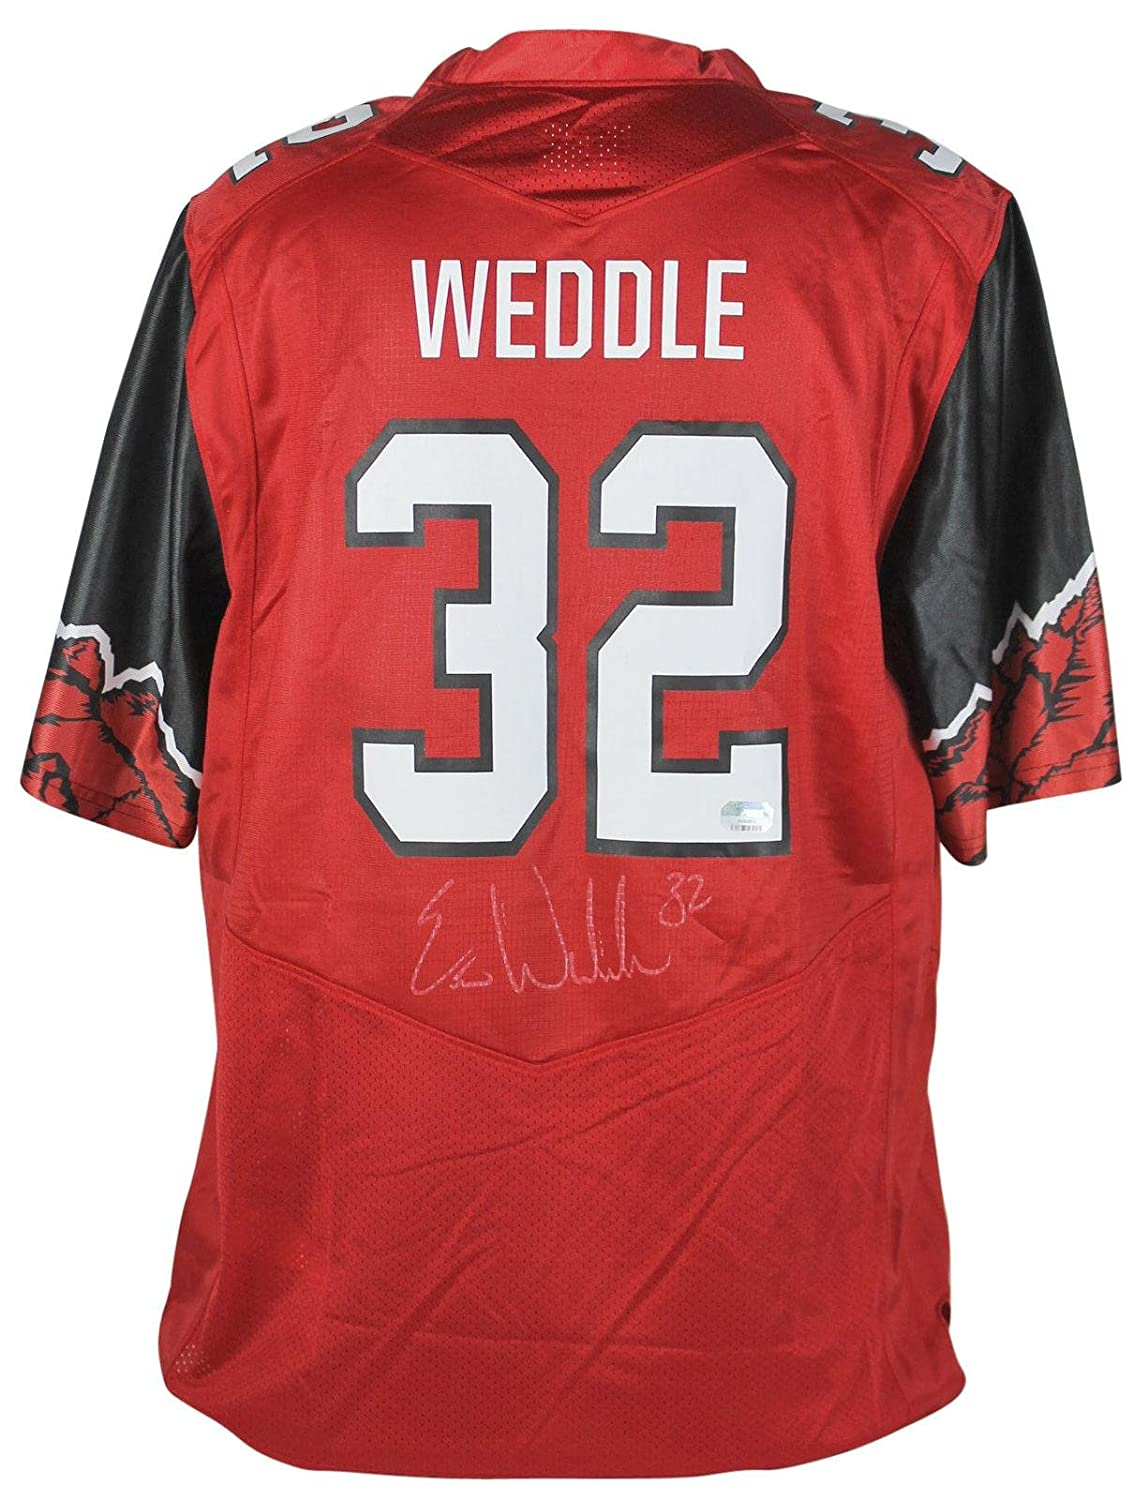 huge selection of fd9ef bac2f Eric Weddle Autographed Jersey - Utah Red Under Armour ...